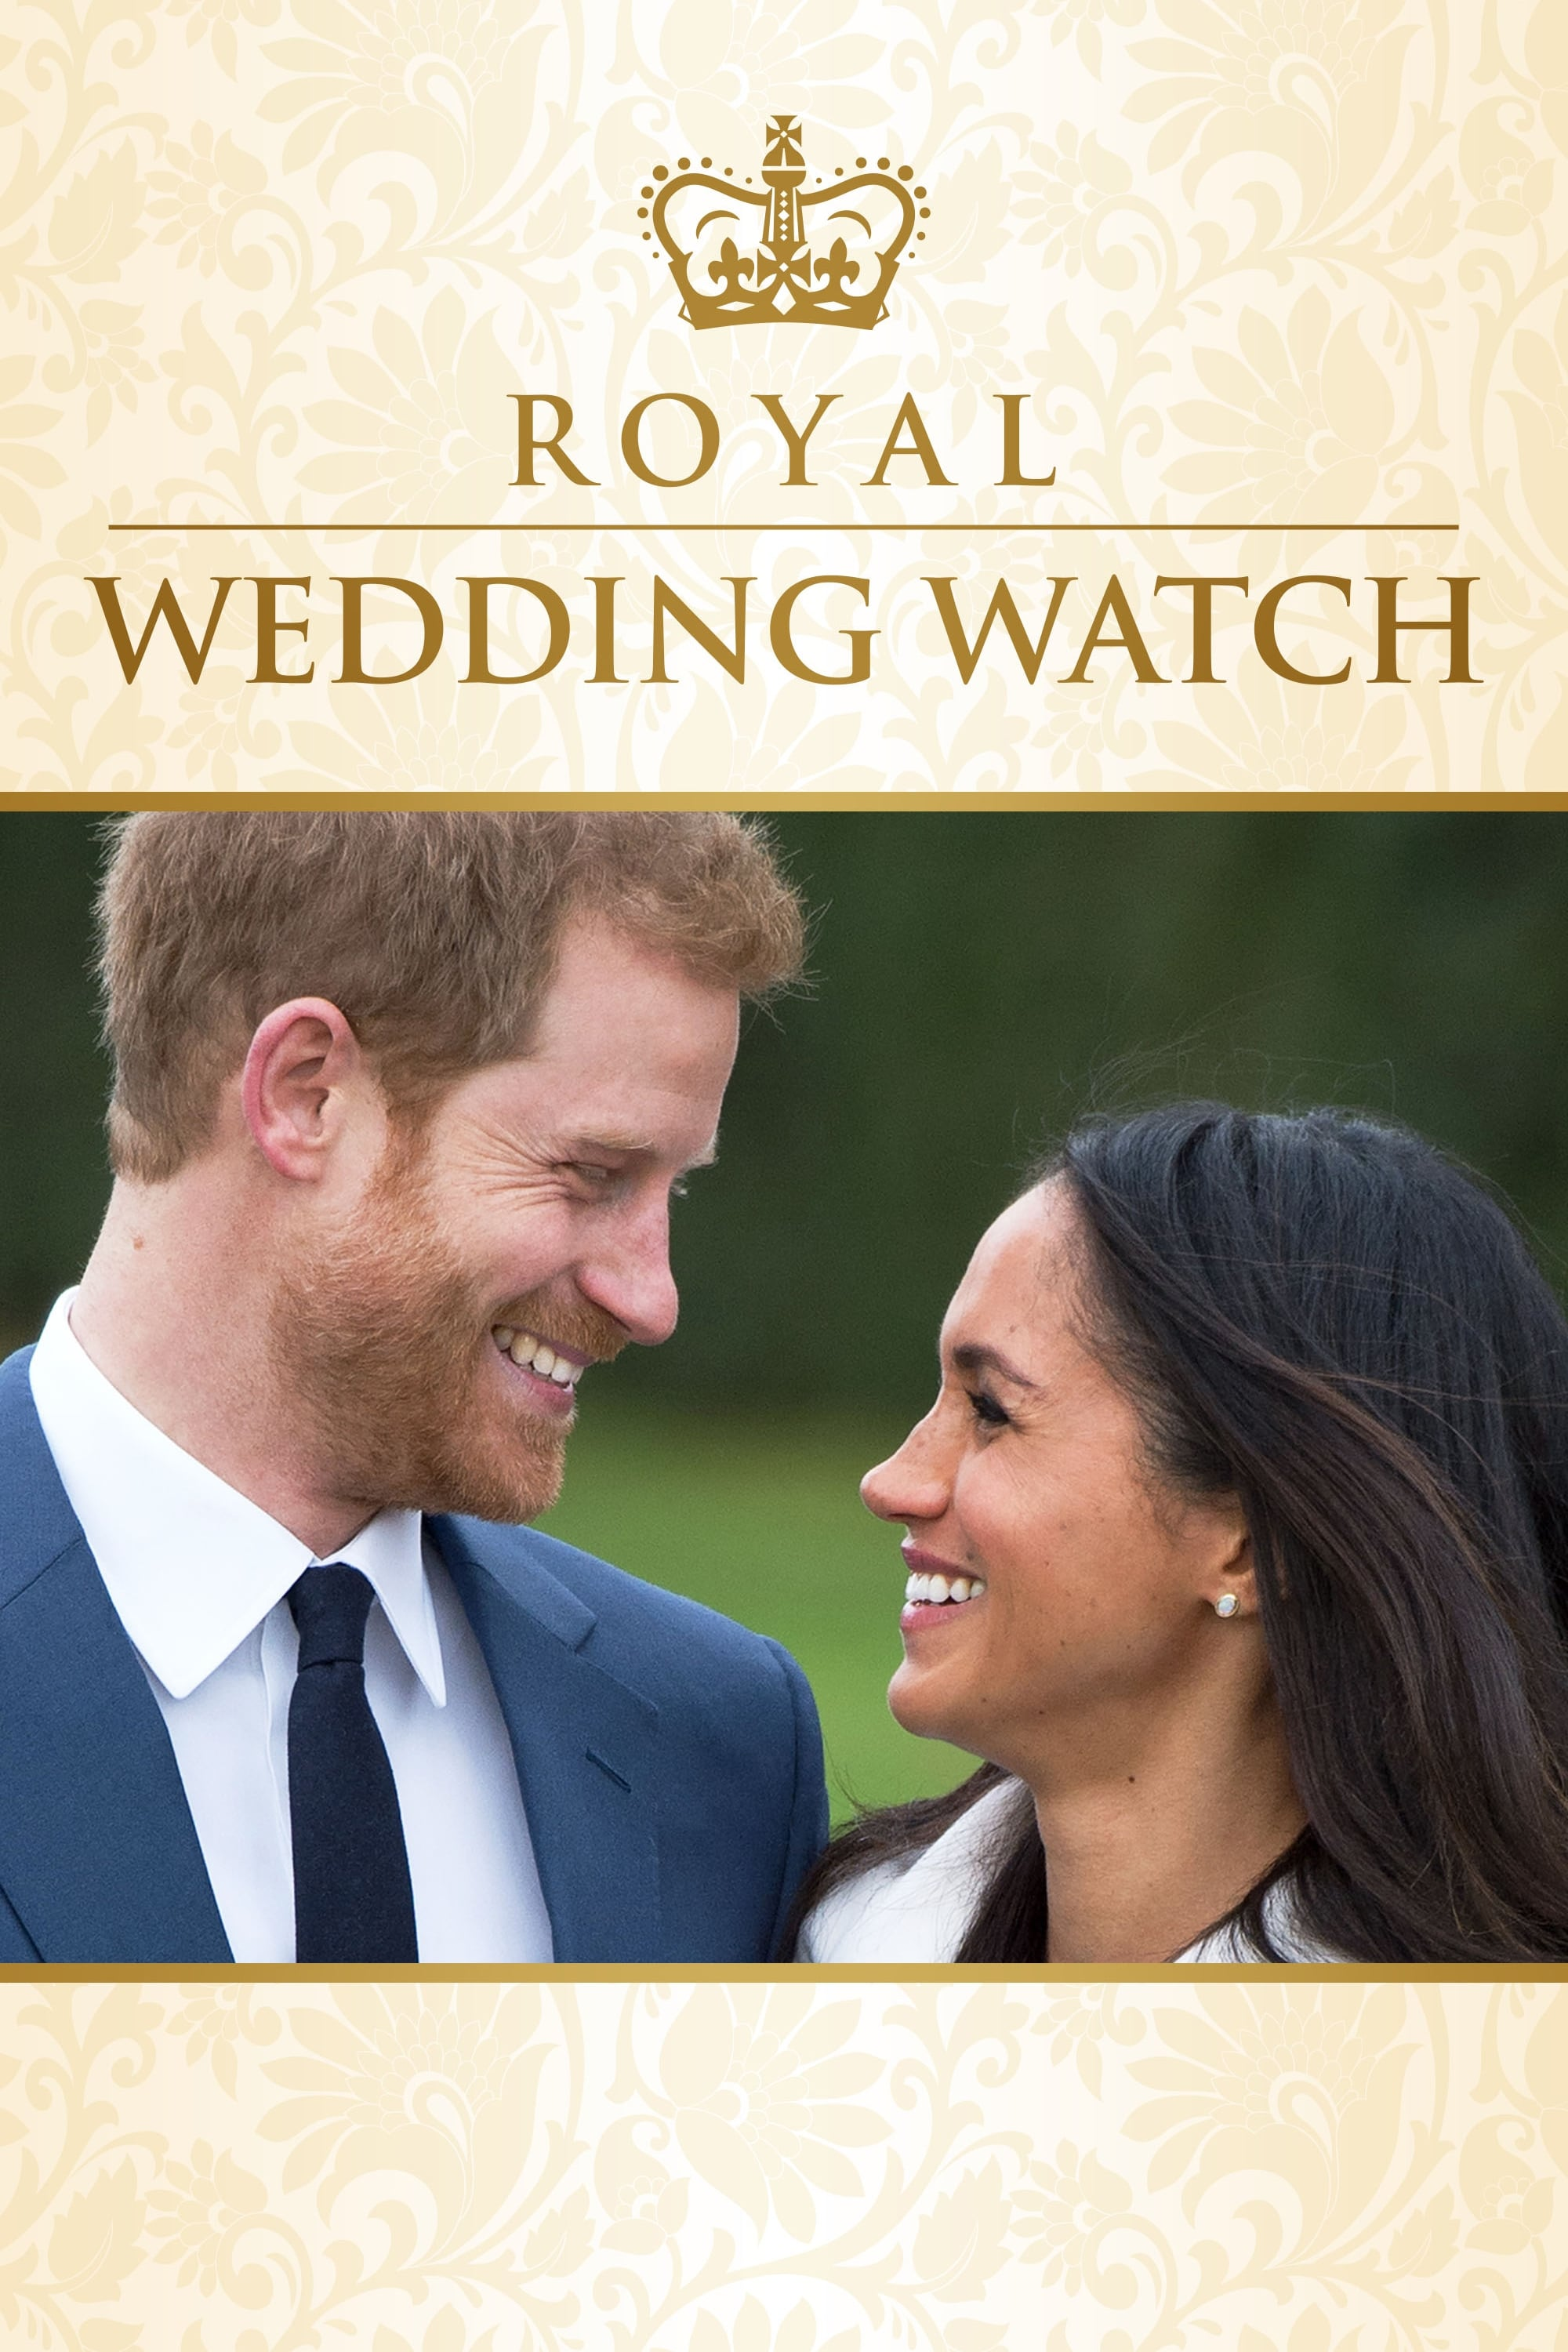 Royal Wedding Watch TV Shows About Palace Intrigue